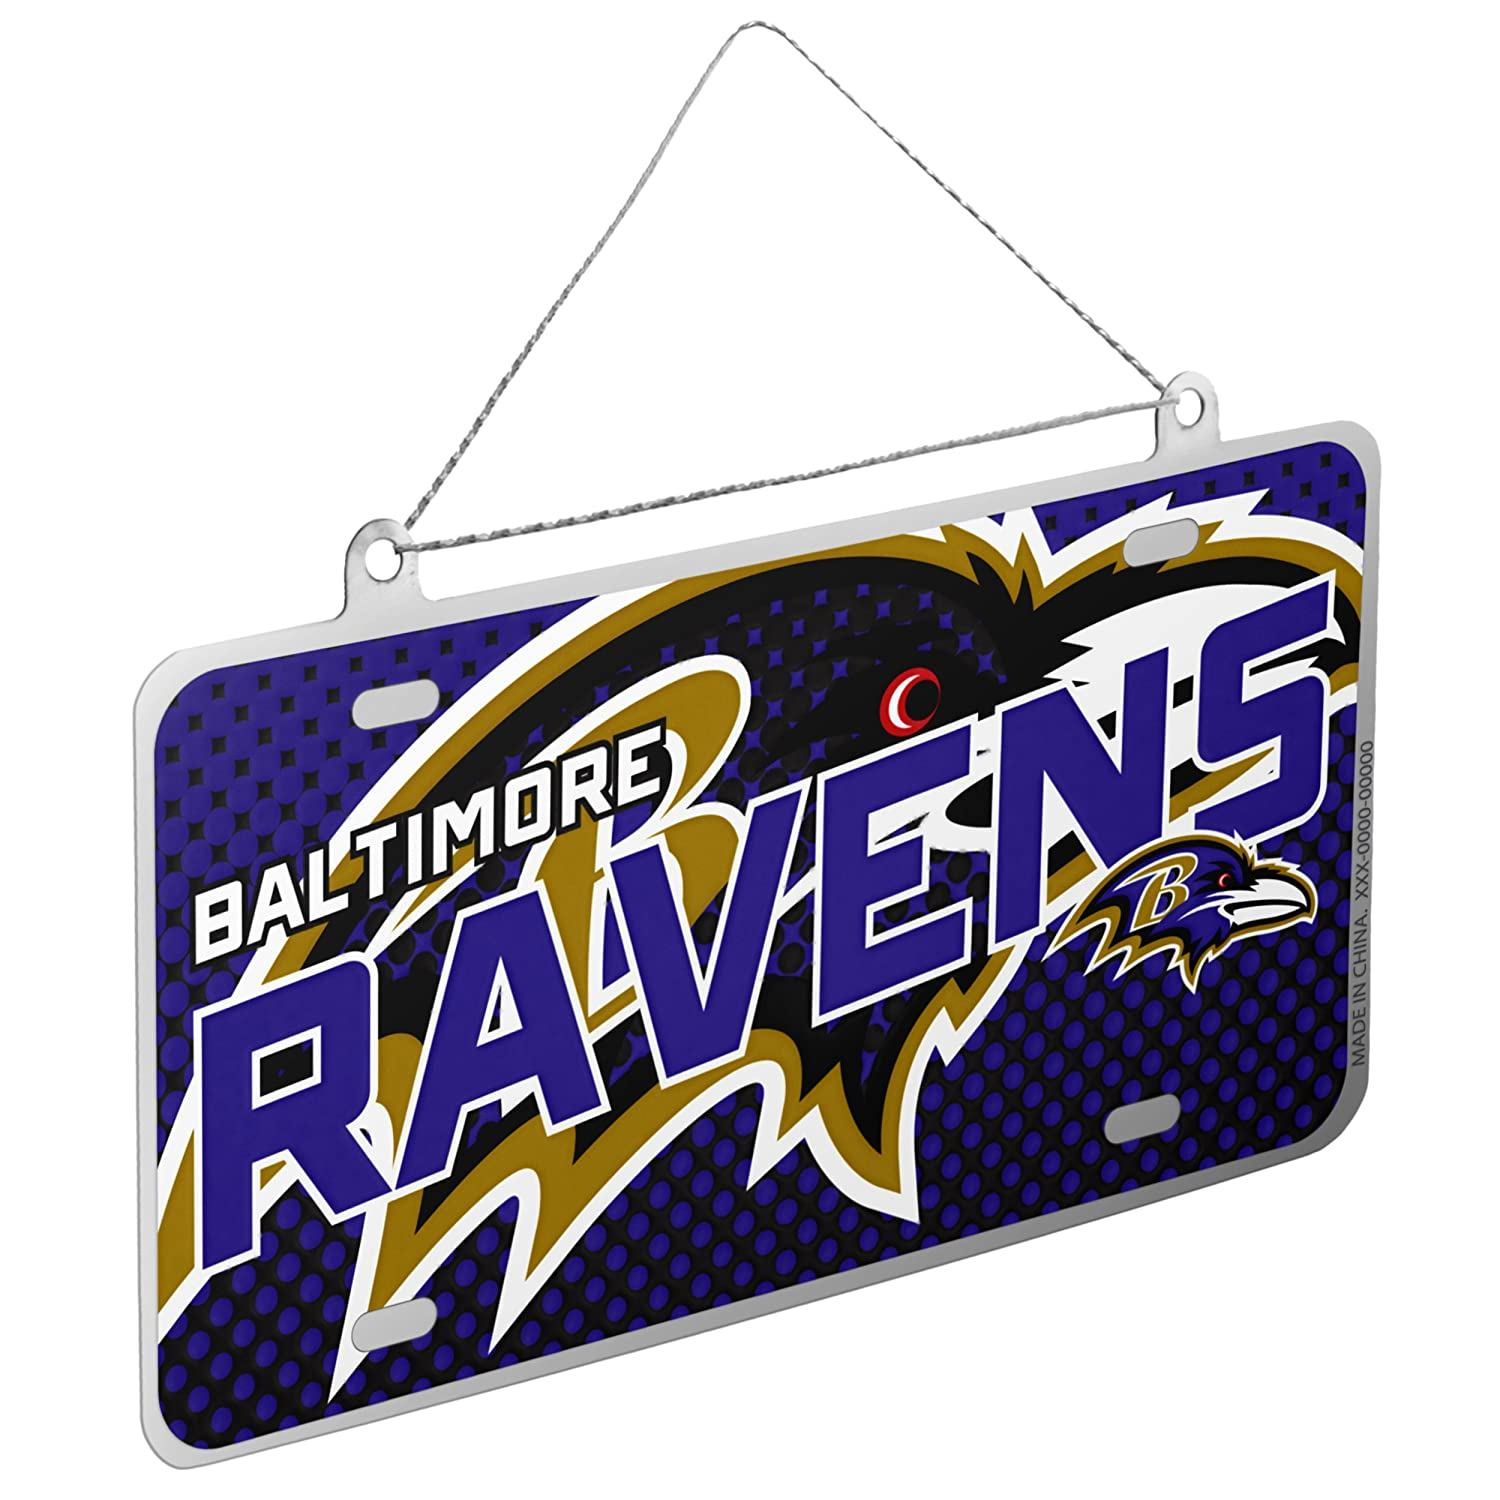 Baltimore Ravens NFL Metal License Plate Christmas Ornament by FC 236226